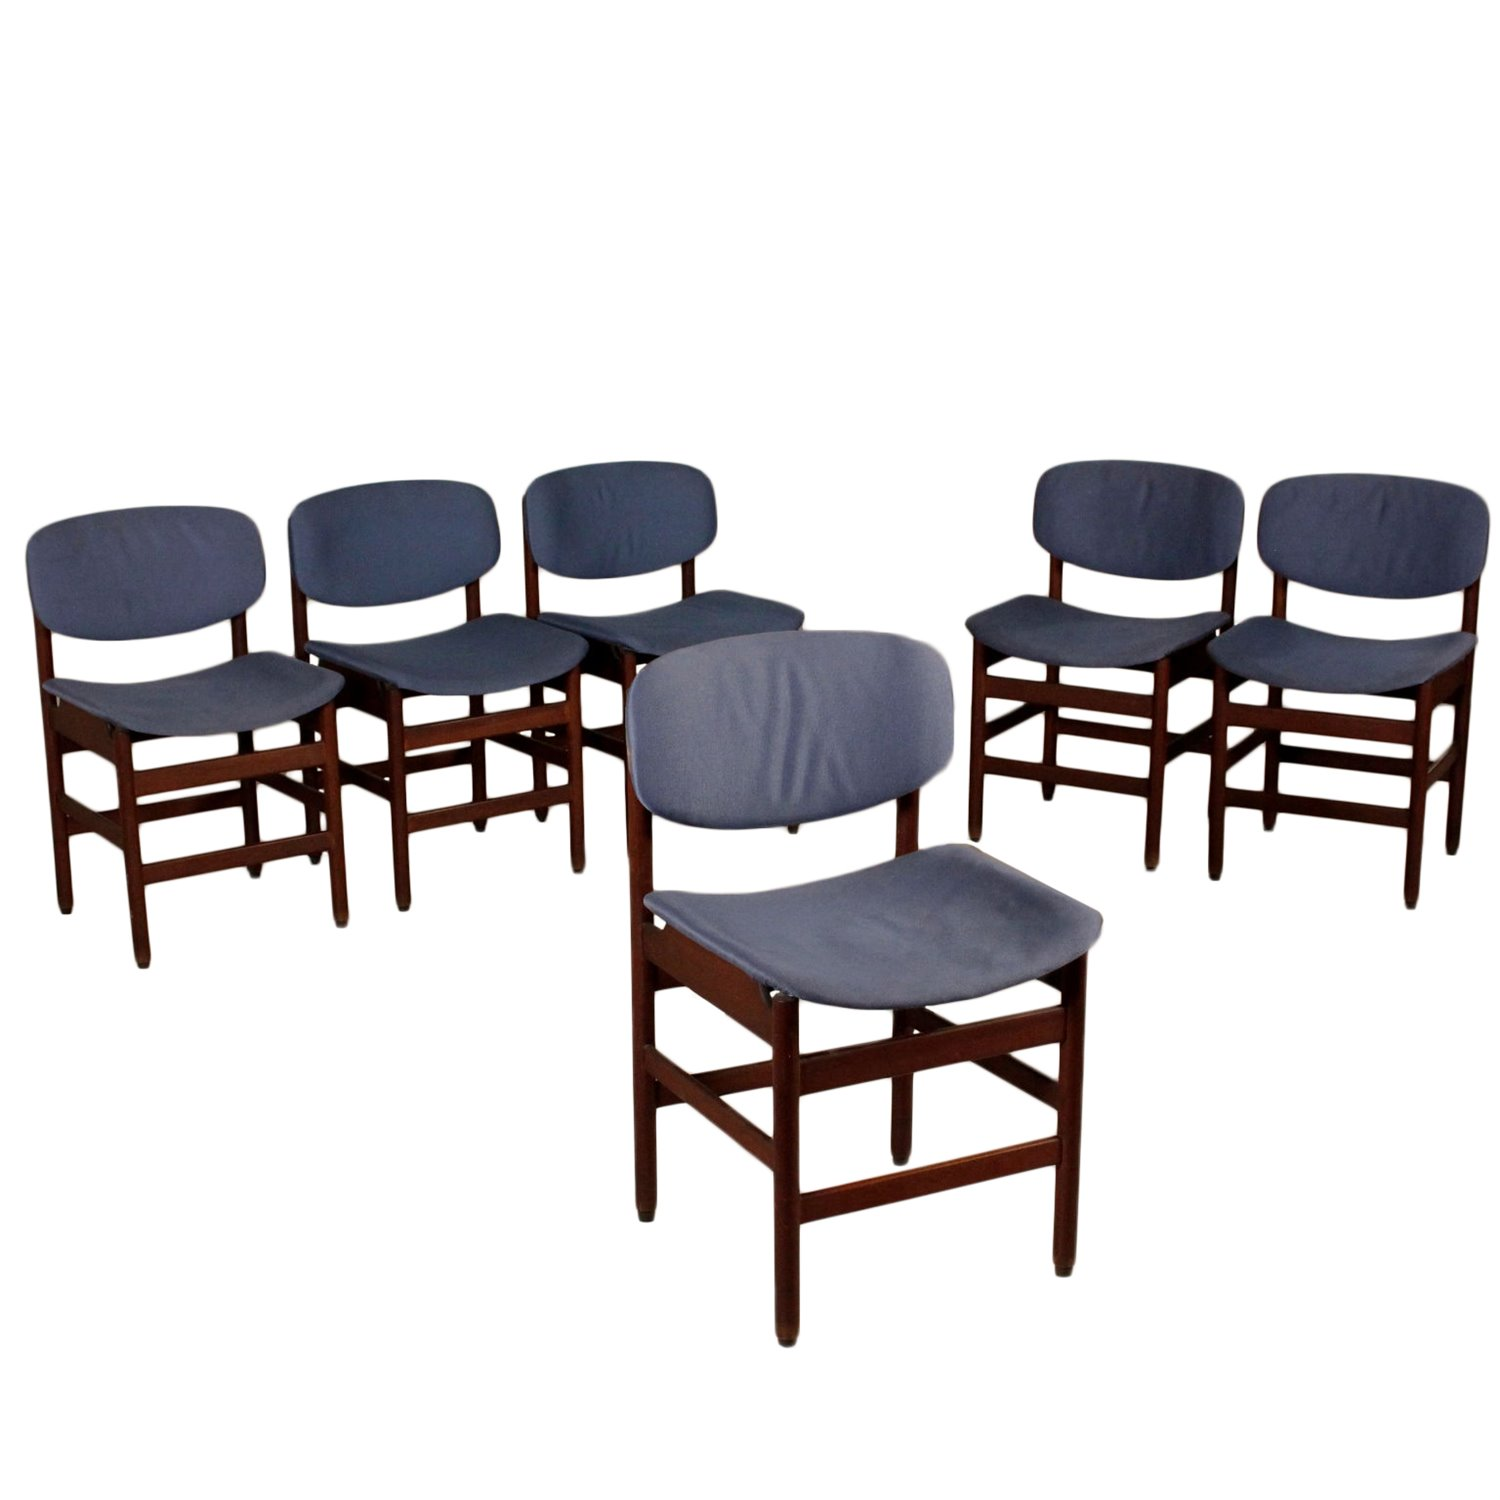 1960s Set of Six Chairs